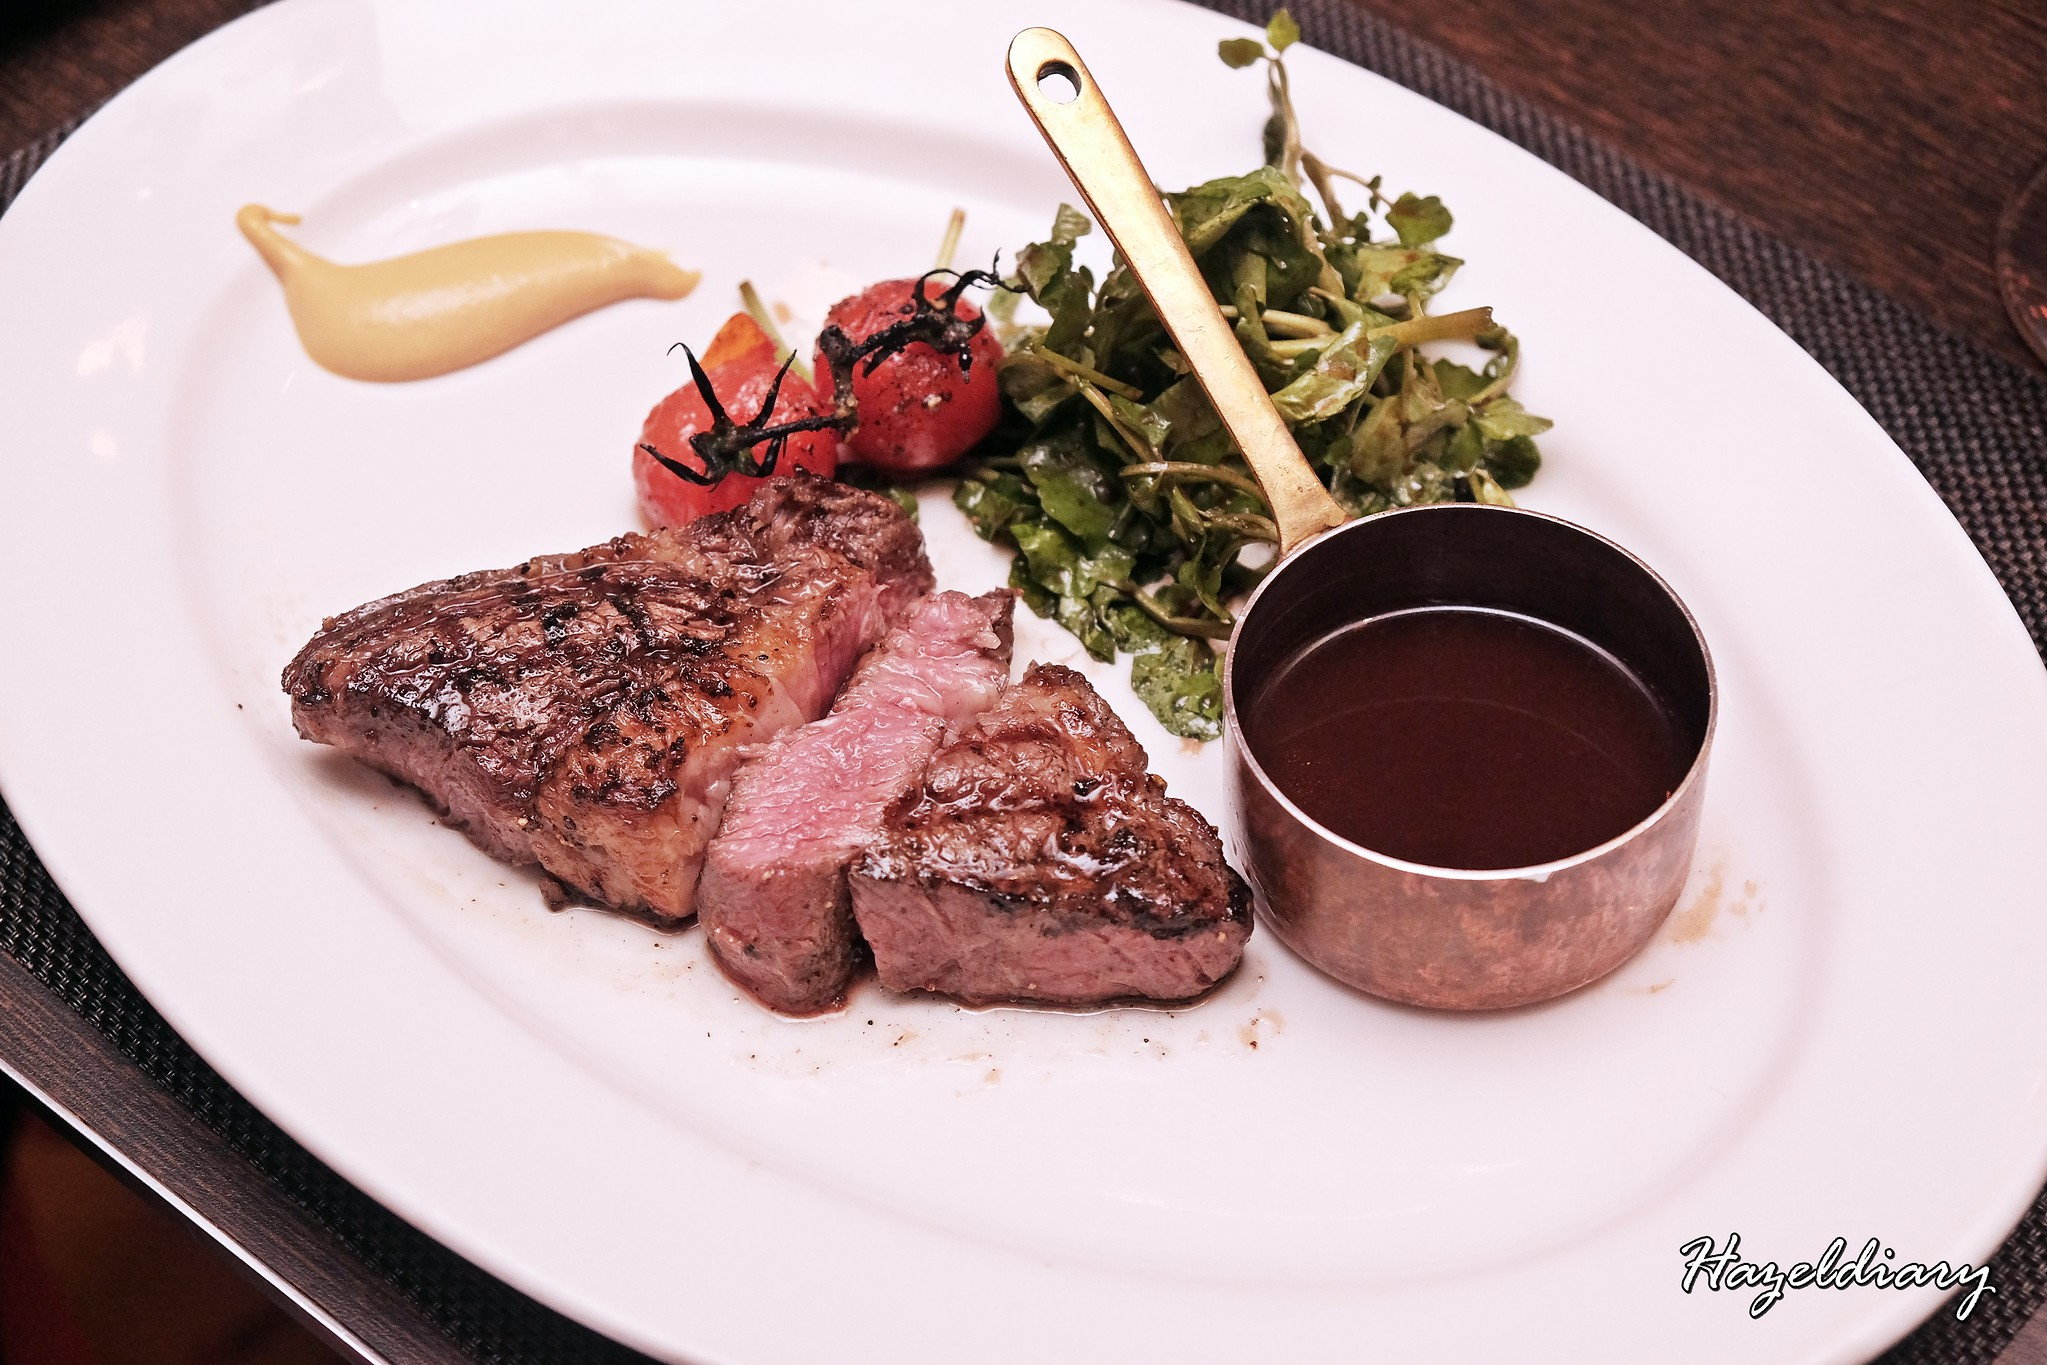 [SG EATS] Wooloomooloo Steakhouse Singapore @ Swissotel The Stamford